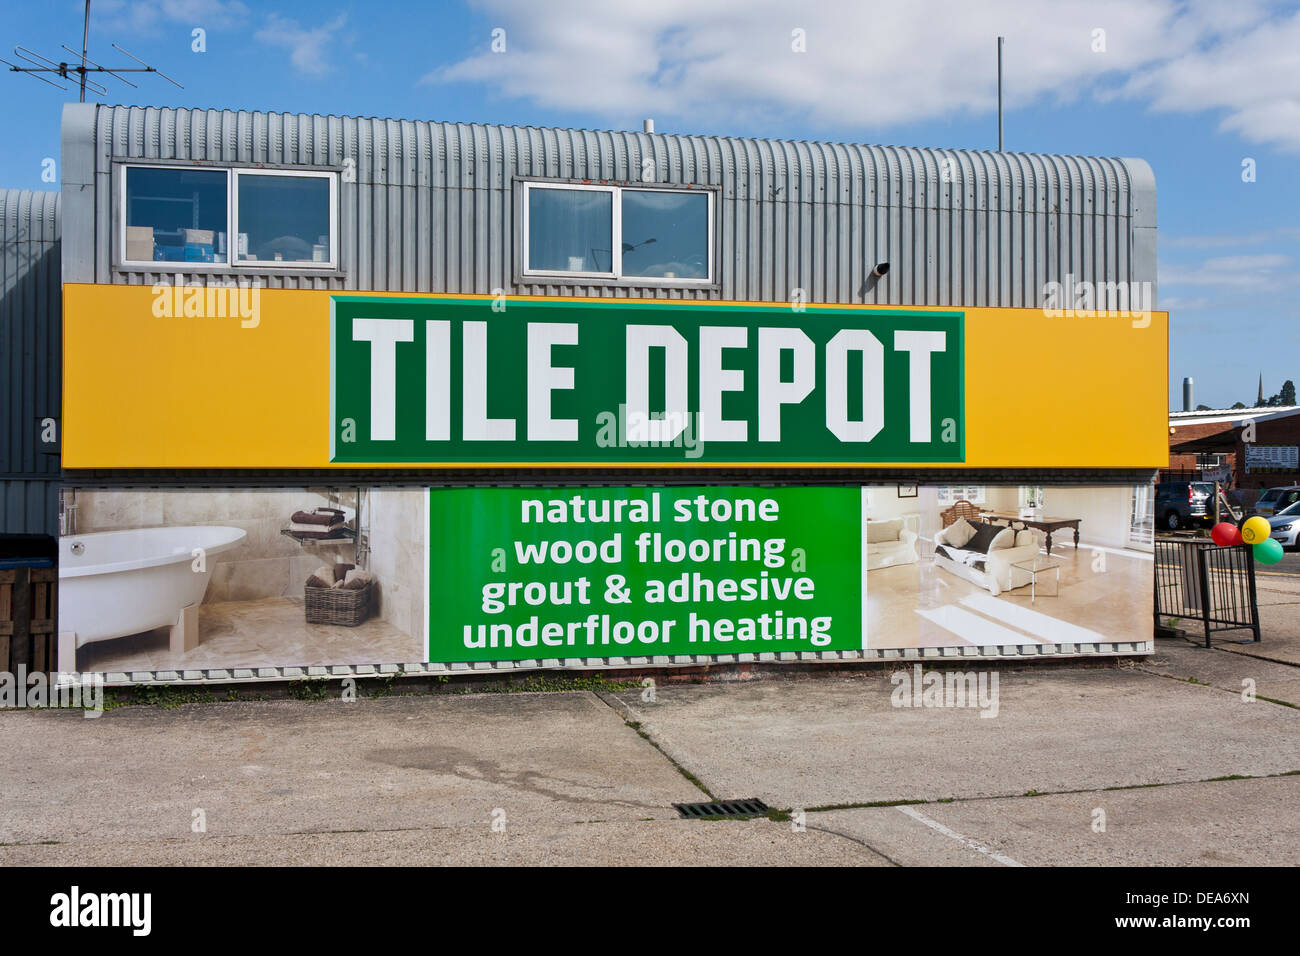 Tile Depot DIY home improvements store Stock Photo: 60461261 - Alamy